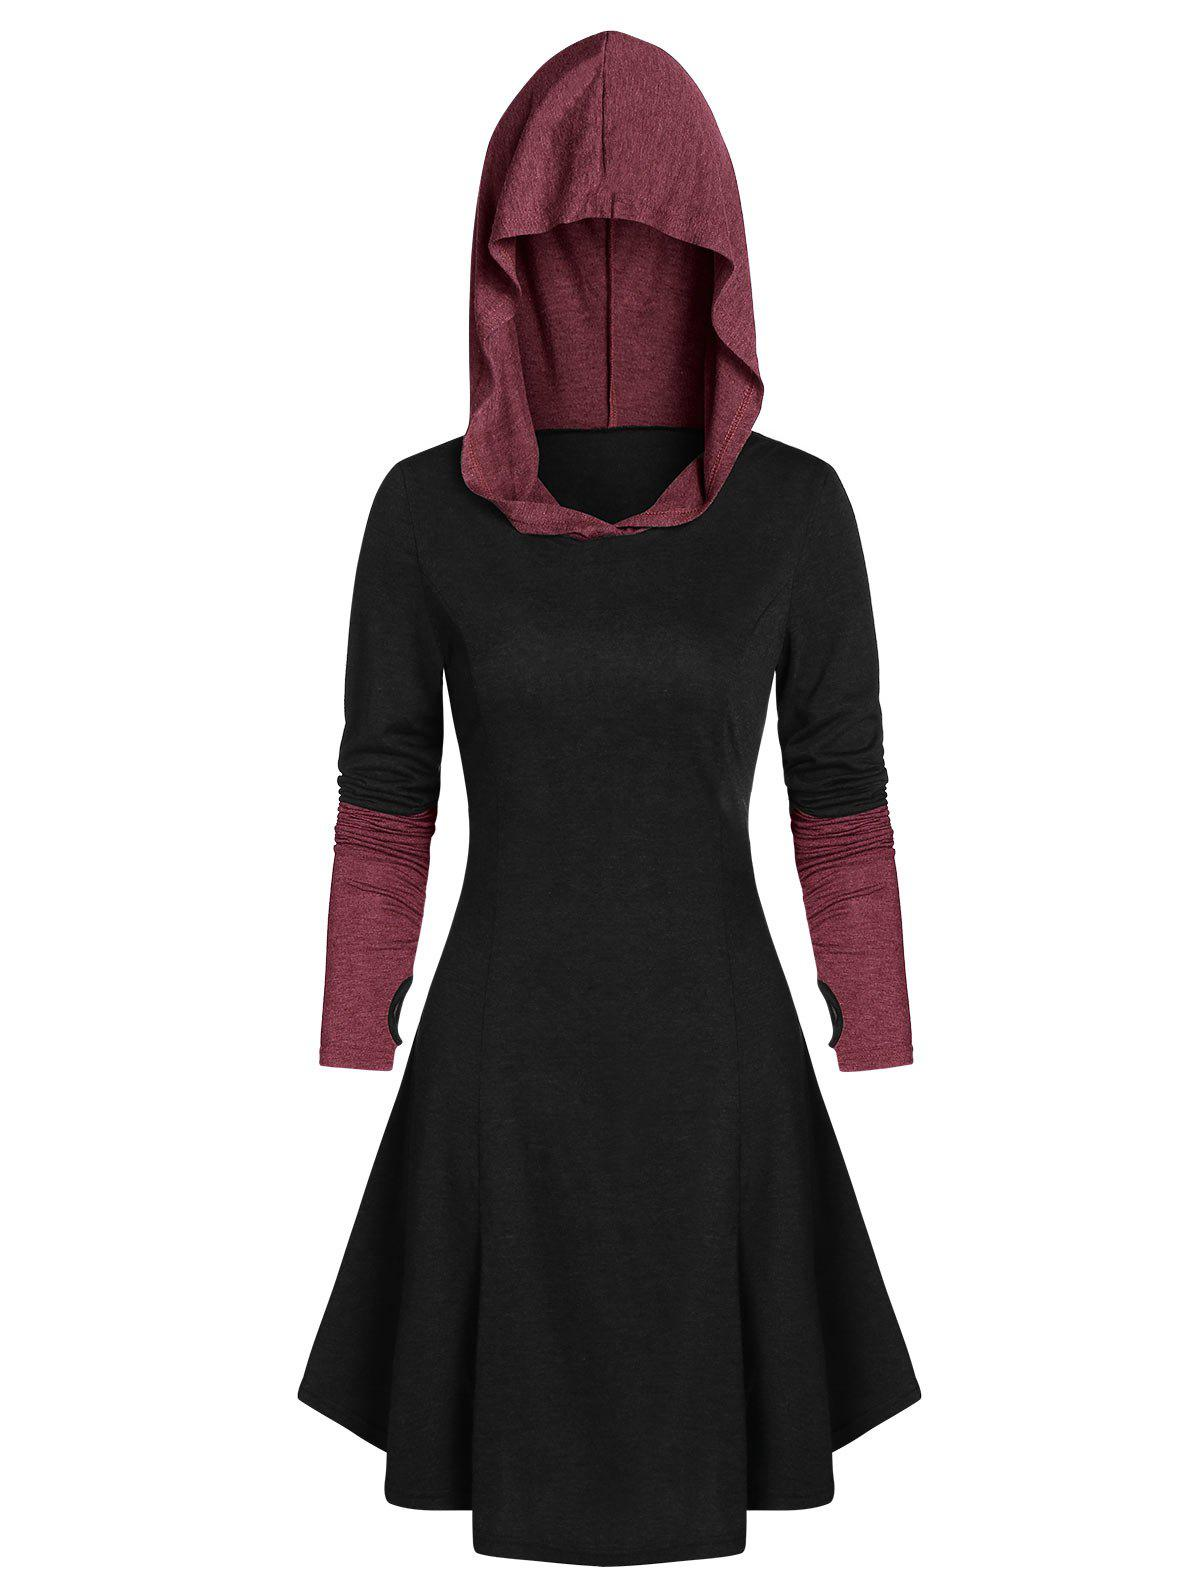 Shop Hooded Glove Sleeve Lace-up Contrast Dress